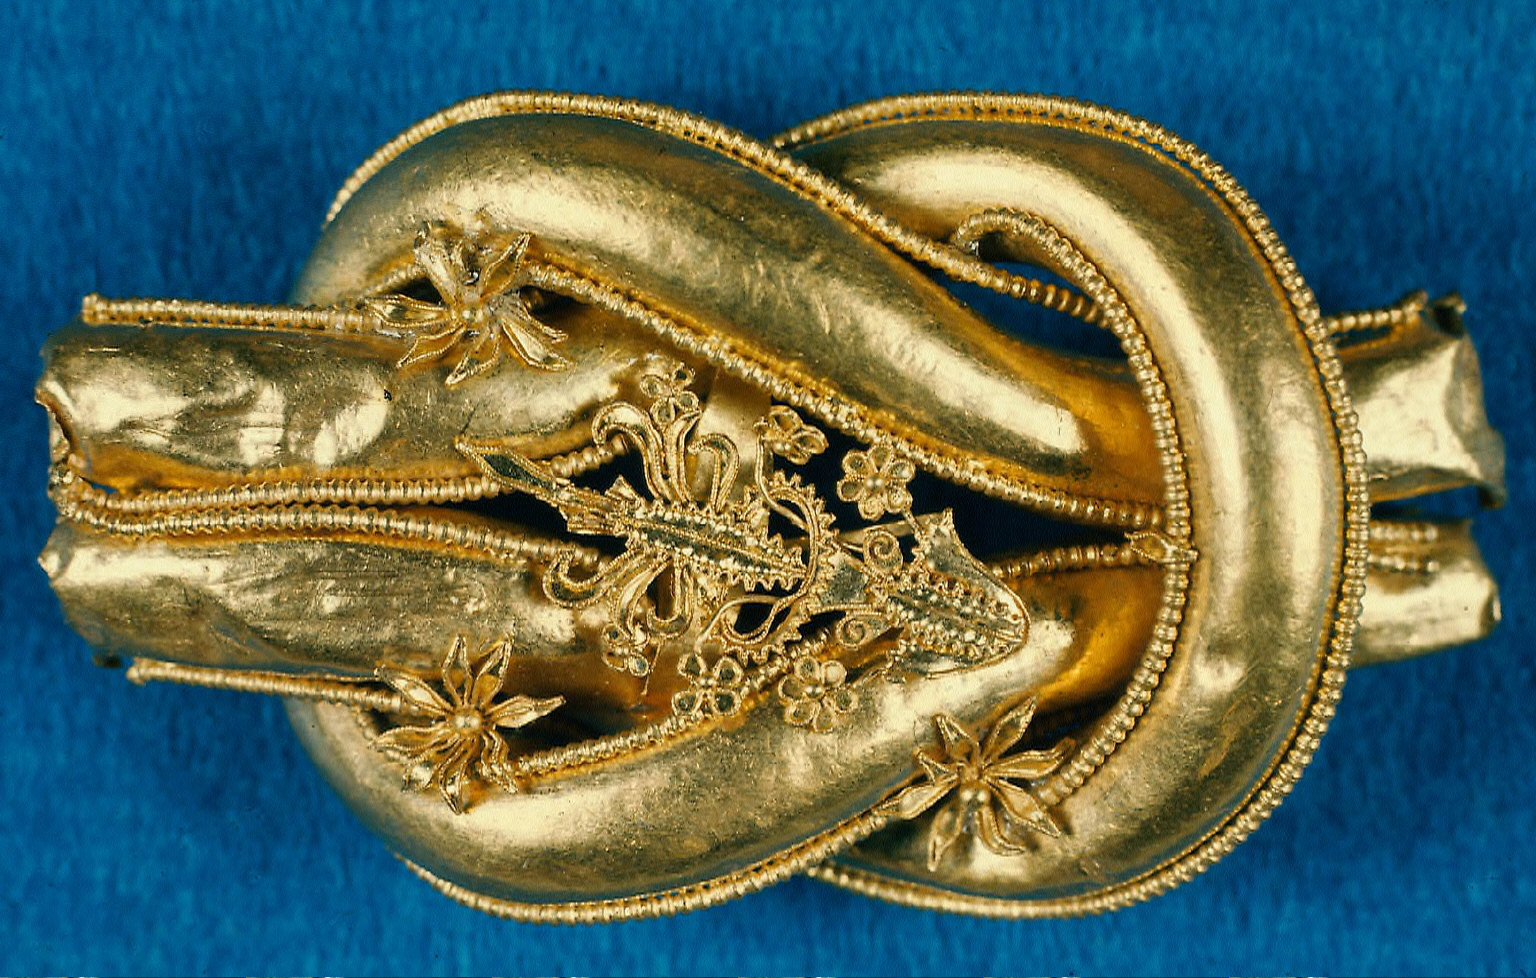 Clasp of a girdle